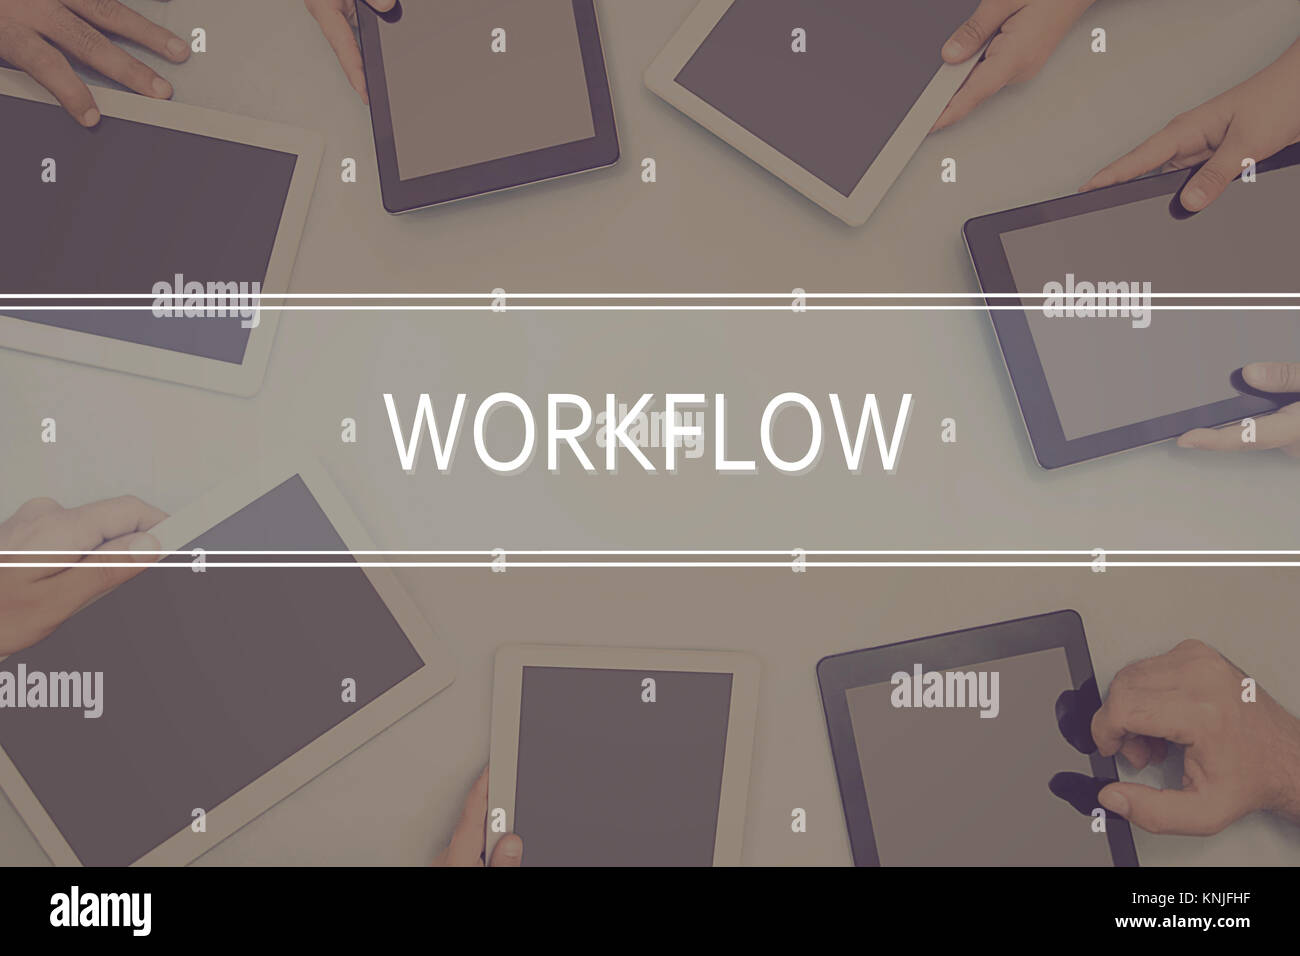 WORKFLOW CONCEPT Business Concept. - Stock Image